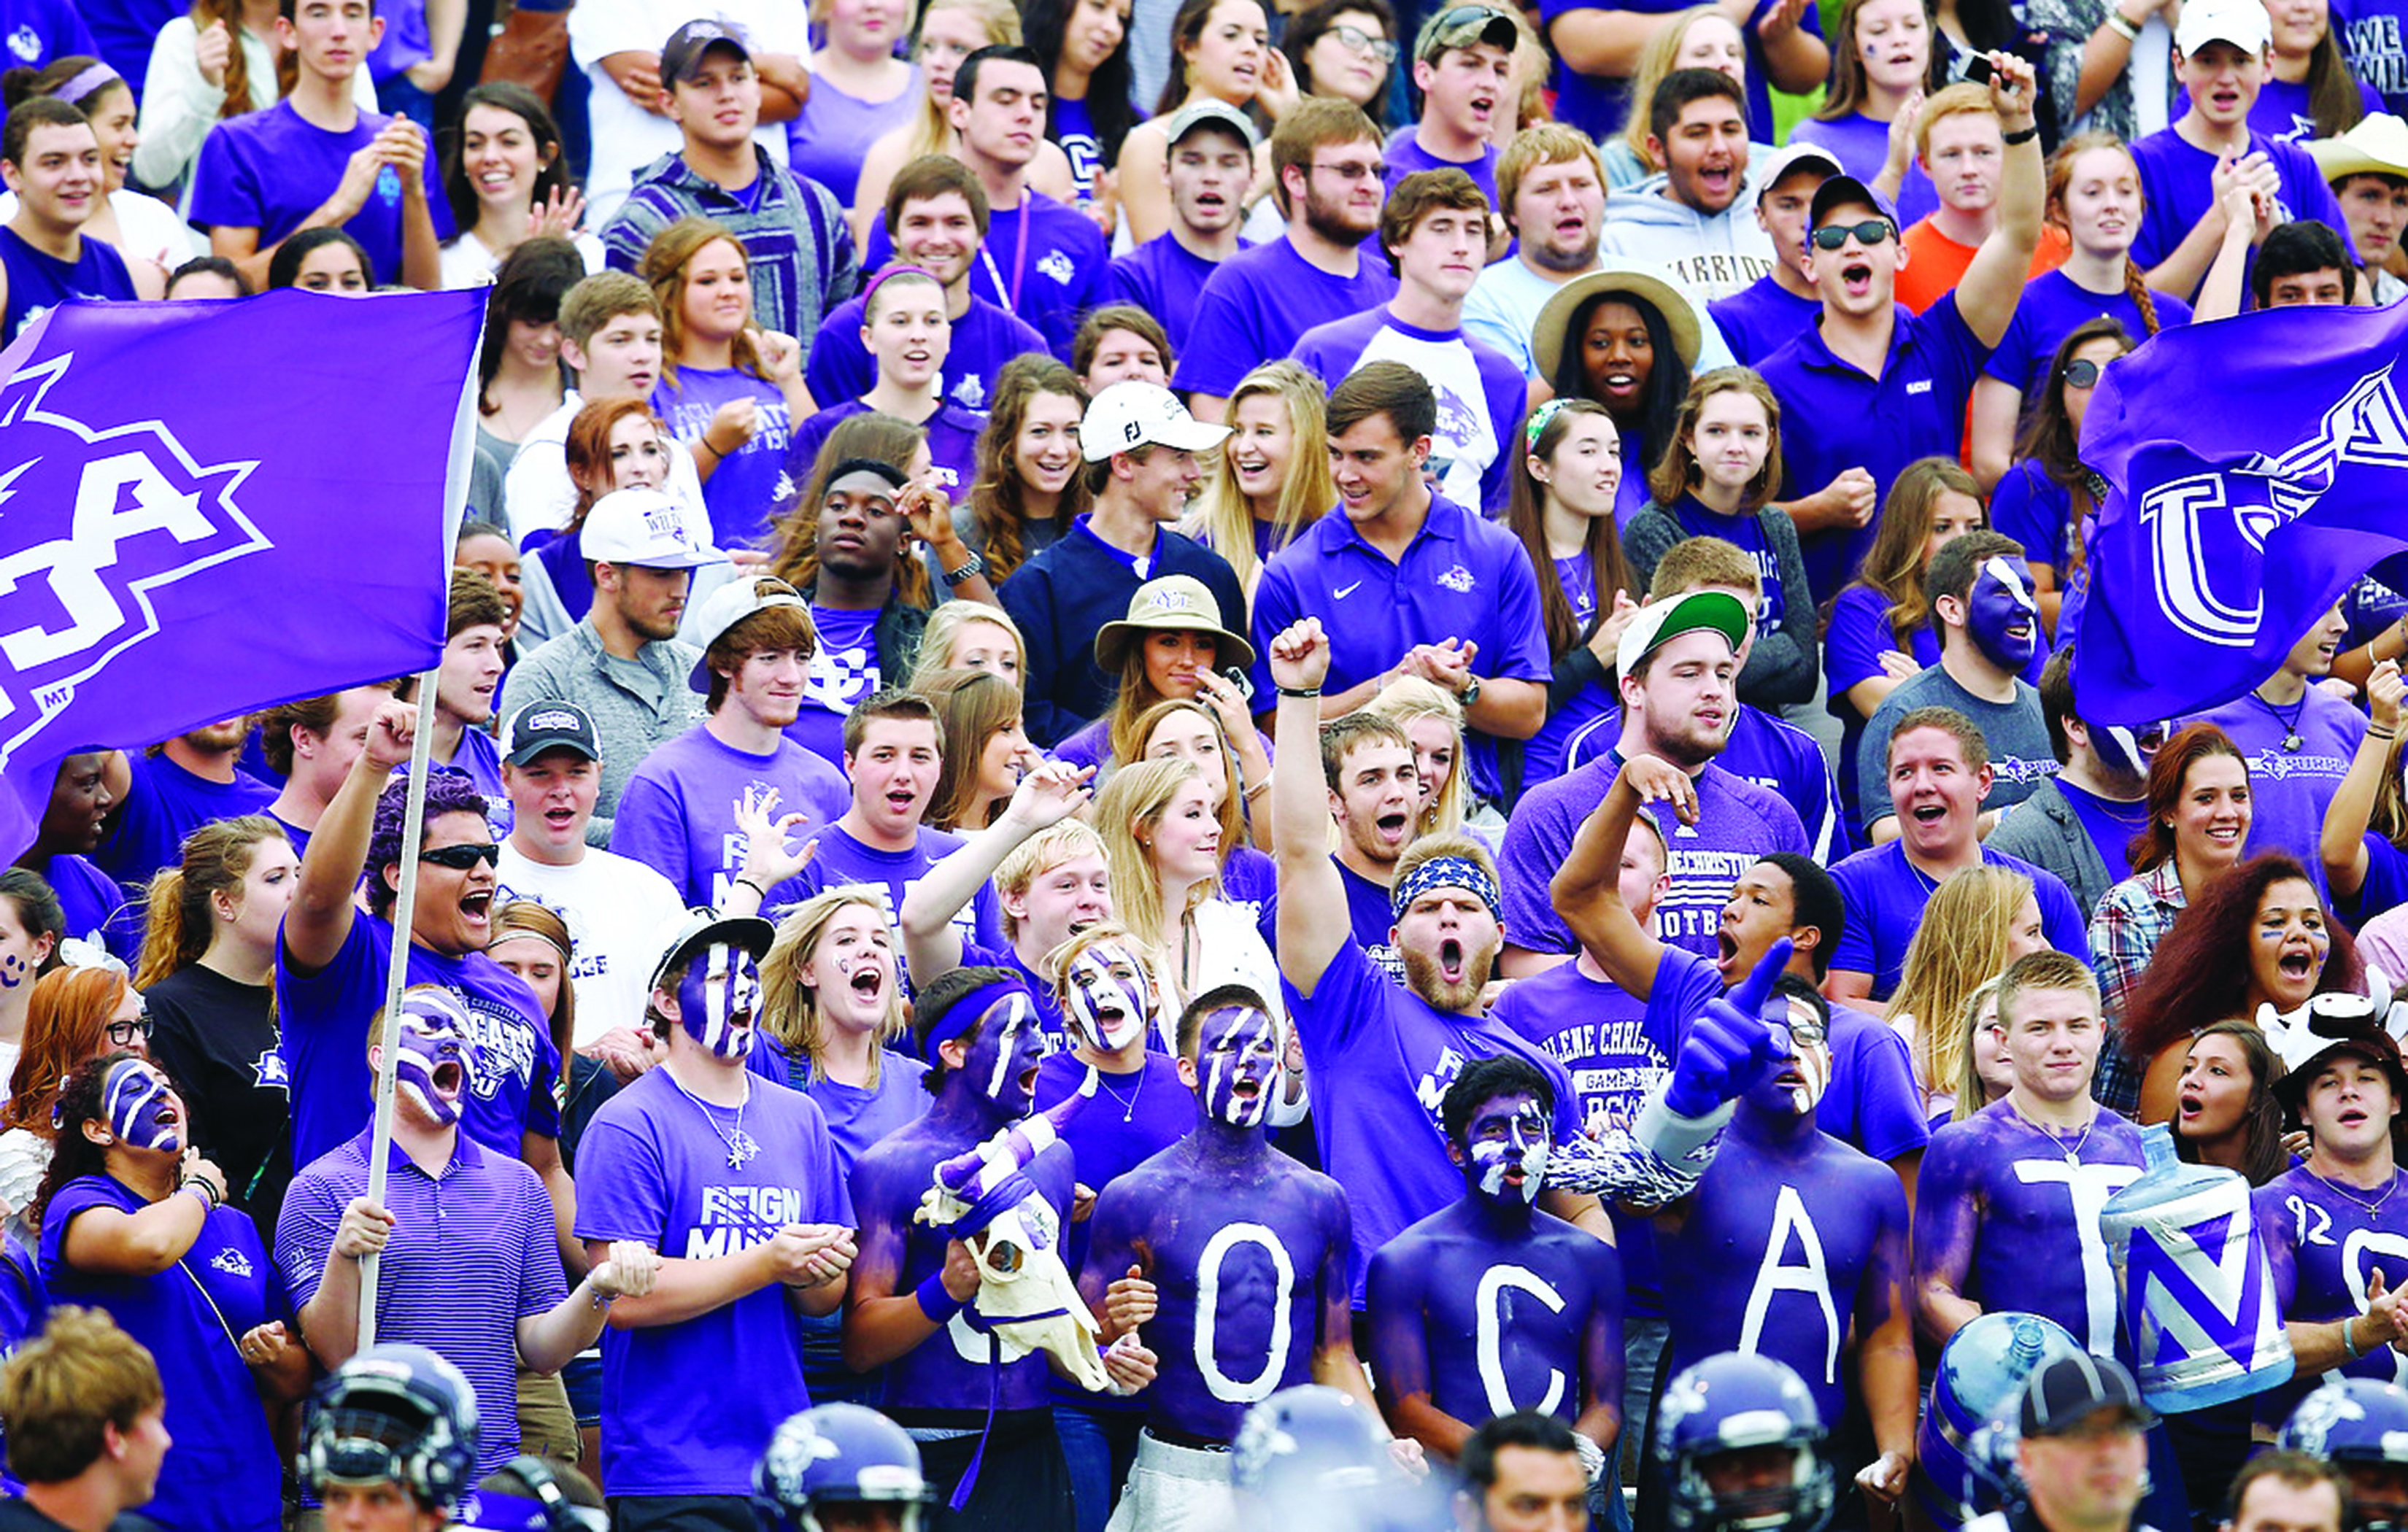 GameDay will be a whole new experience as ACU football moves to Wildcat Stadium.